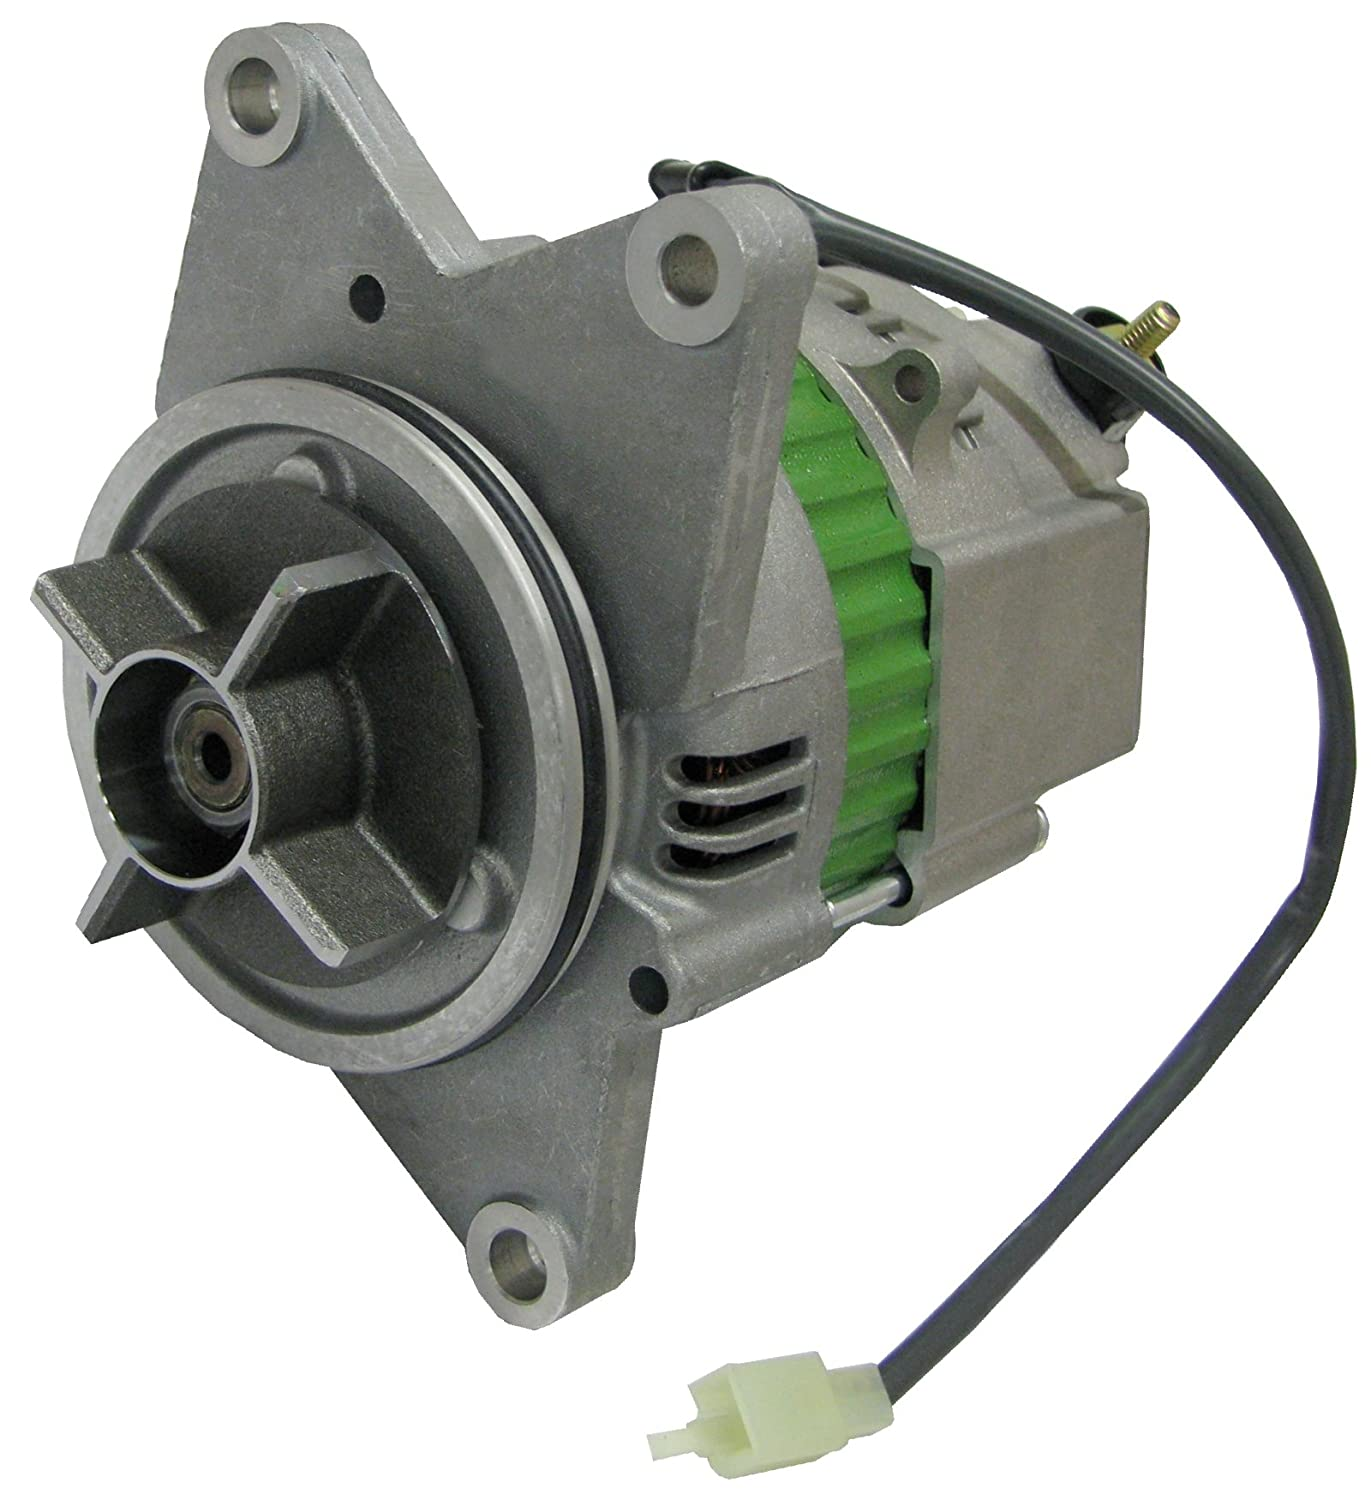 Amazon.com: 100% New Alternator Honda Goldwing LR140-708 LR140-708C:  Automotive